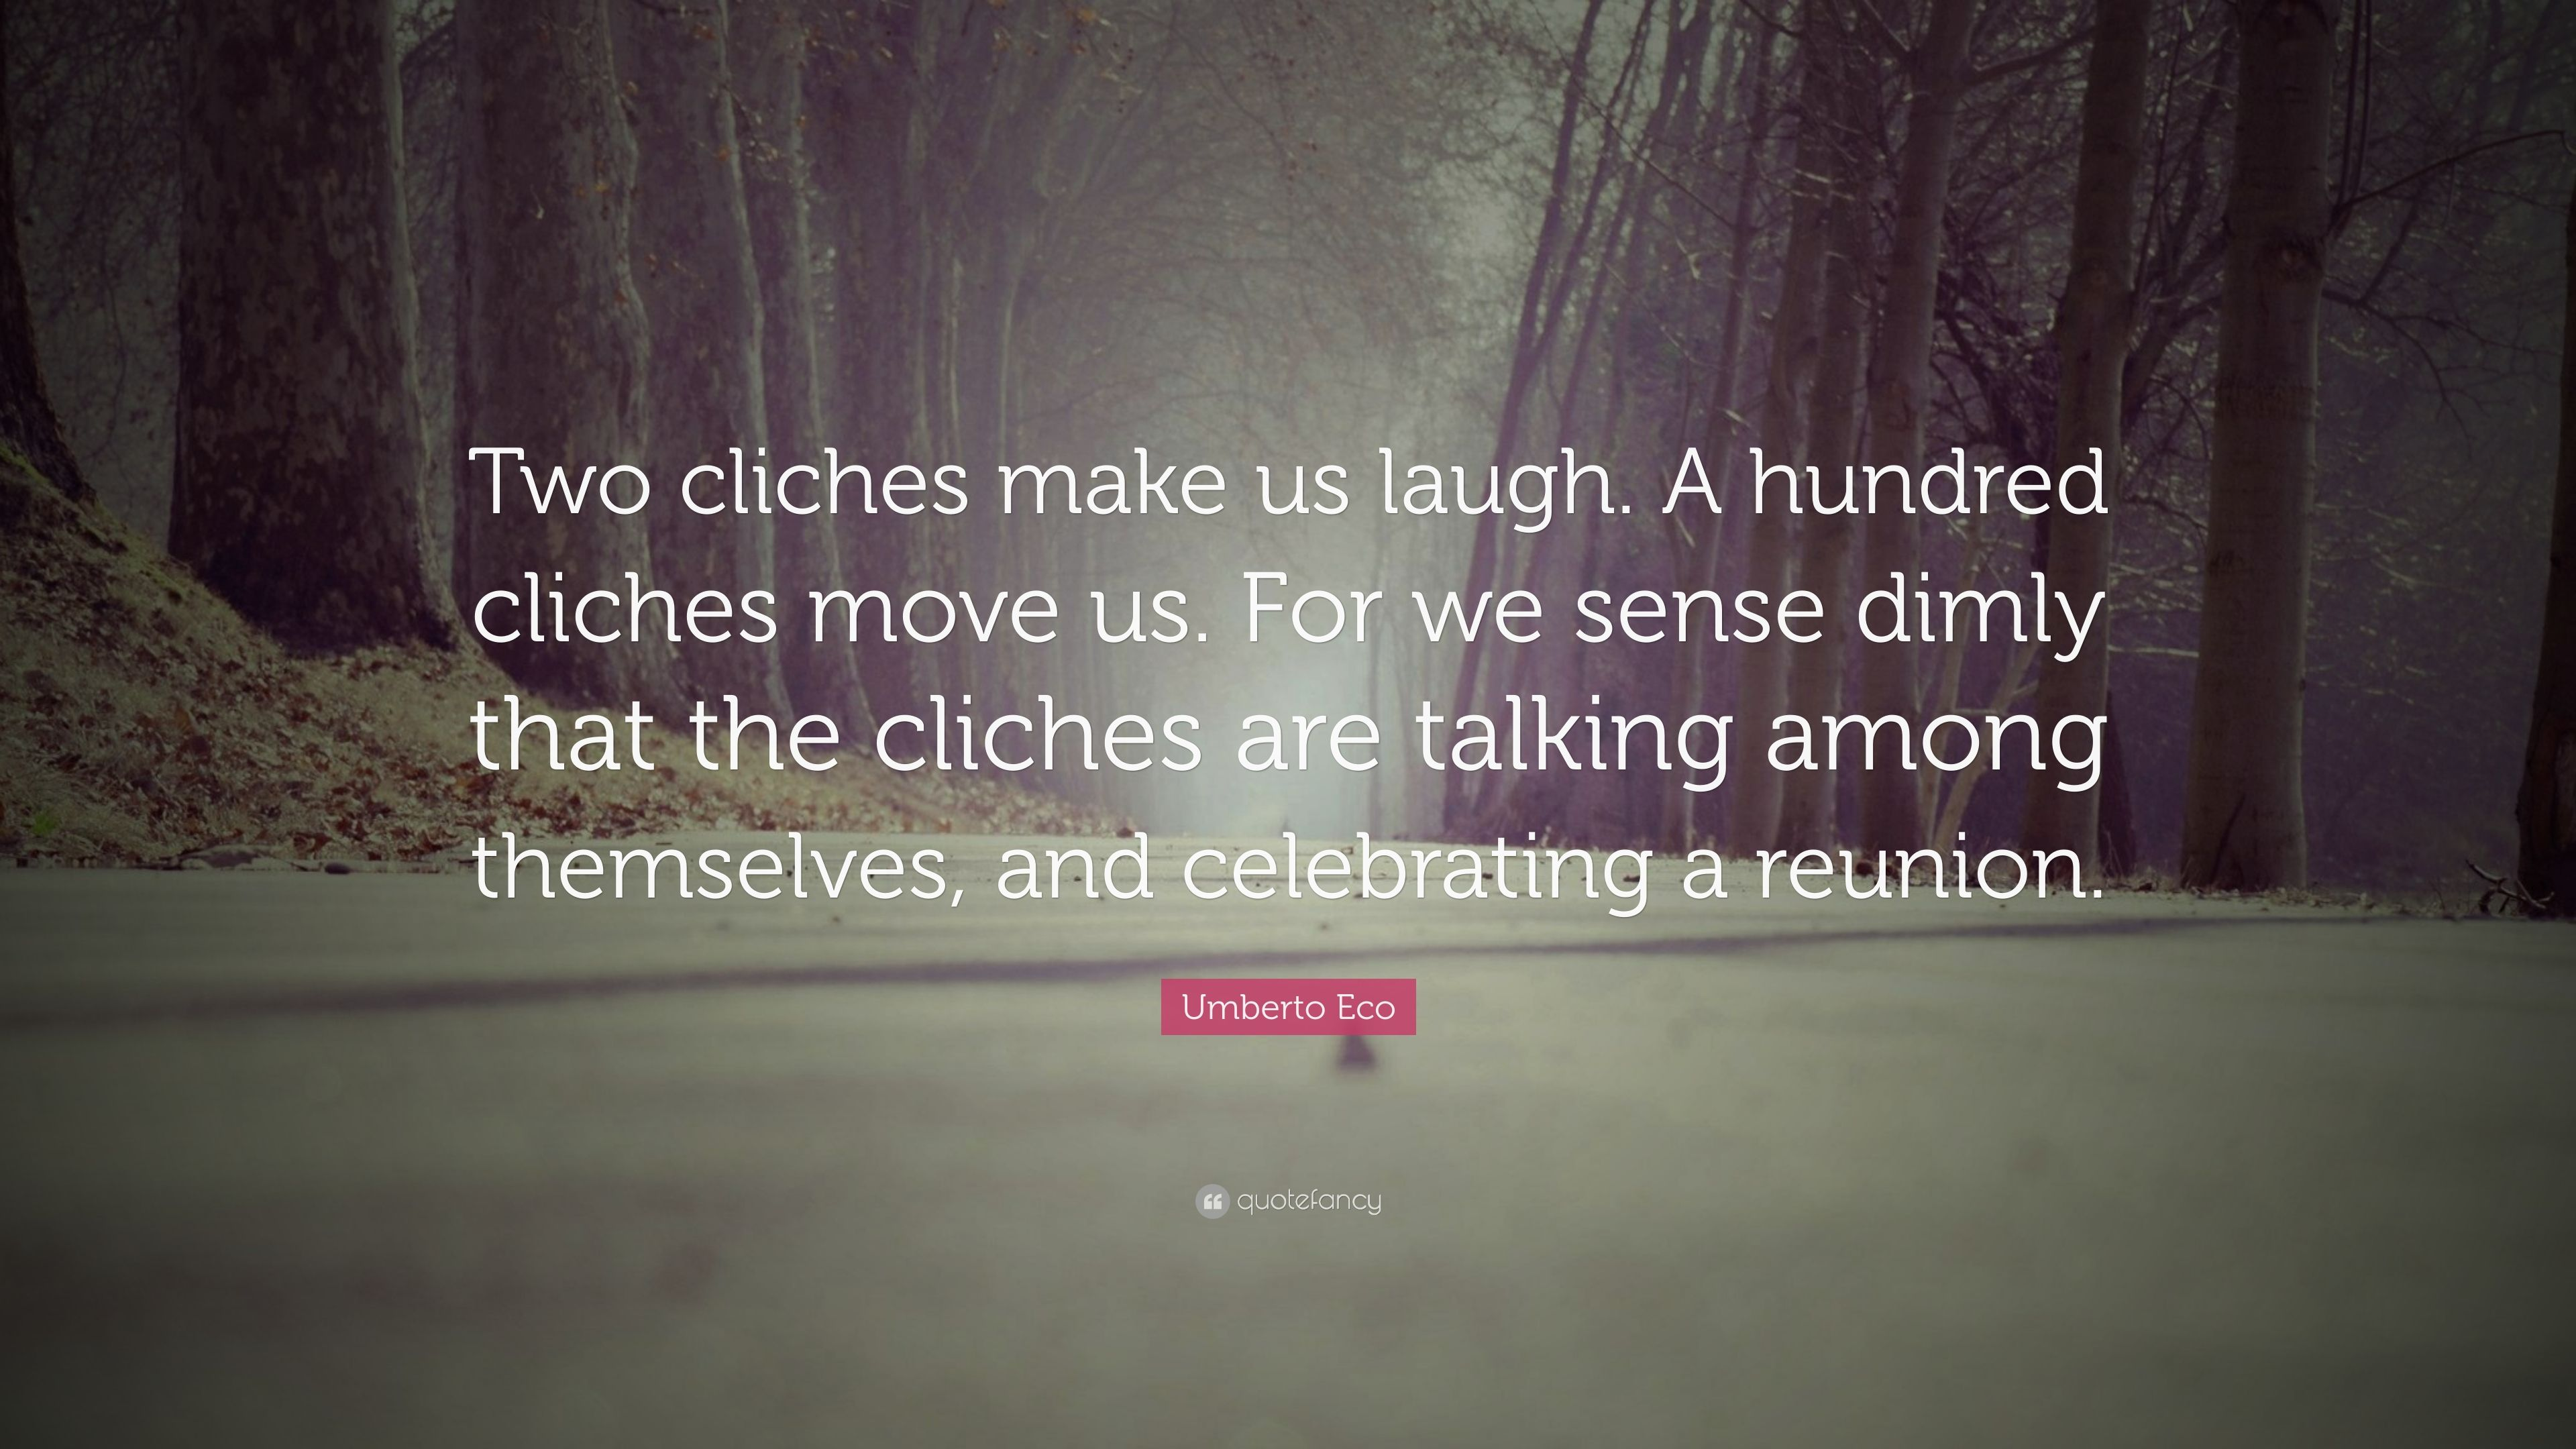 Cliches Are Talking Among Themselves >> Umberto Eco Quote Two Cliches Make Us Laugh A Hundred Cliches